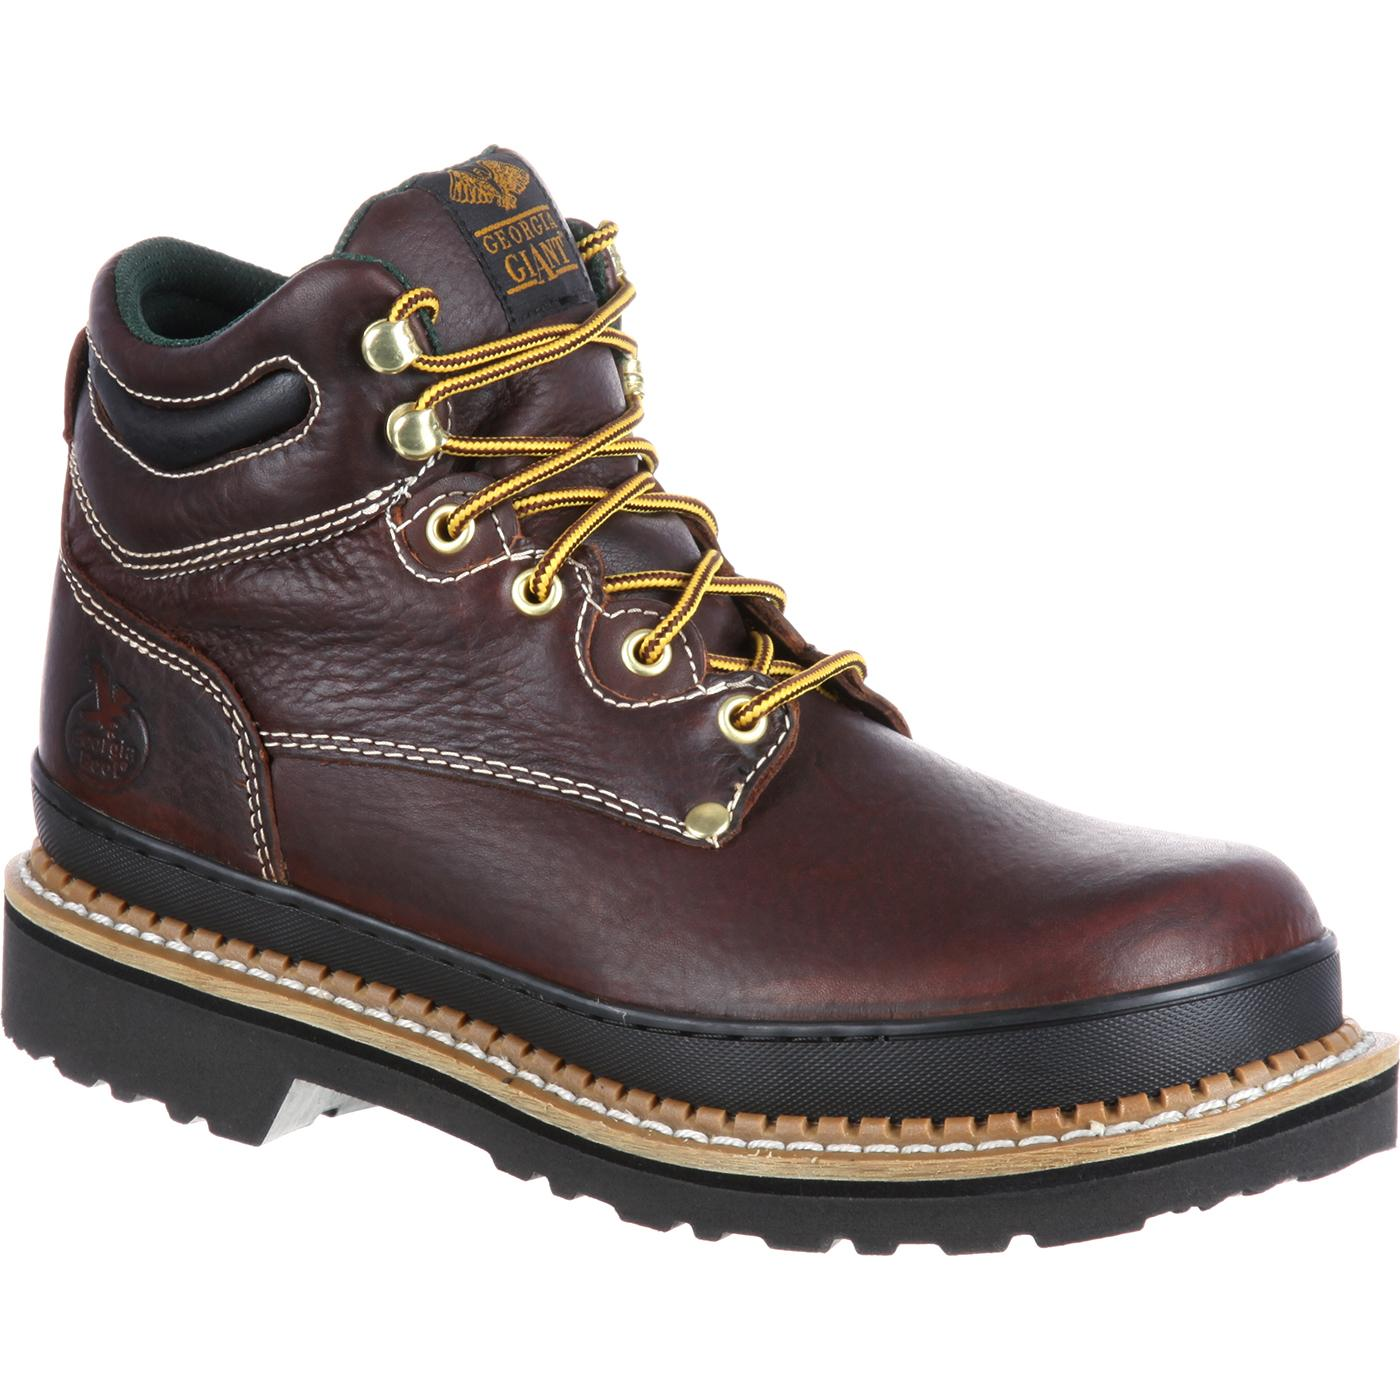 Georgia Giant Oblique Steel Toe Work Boot, , large